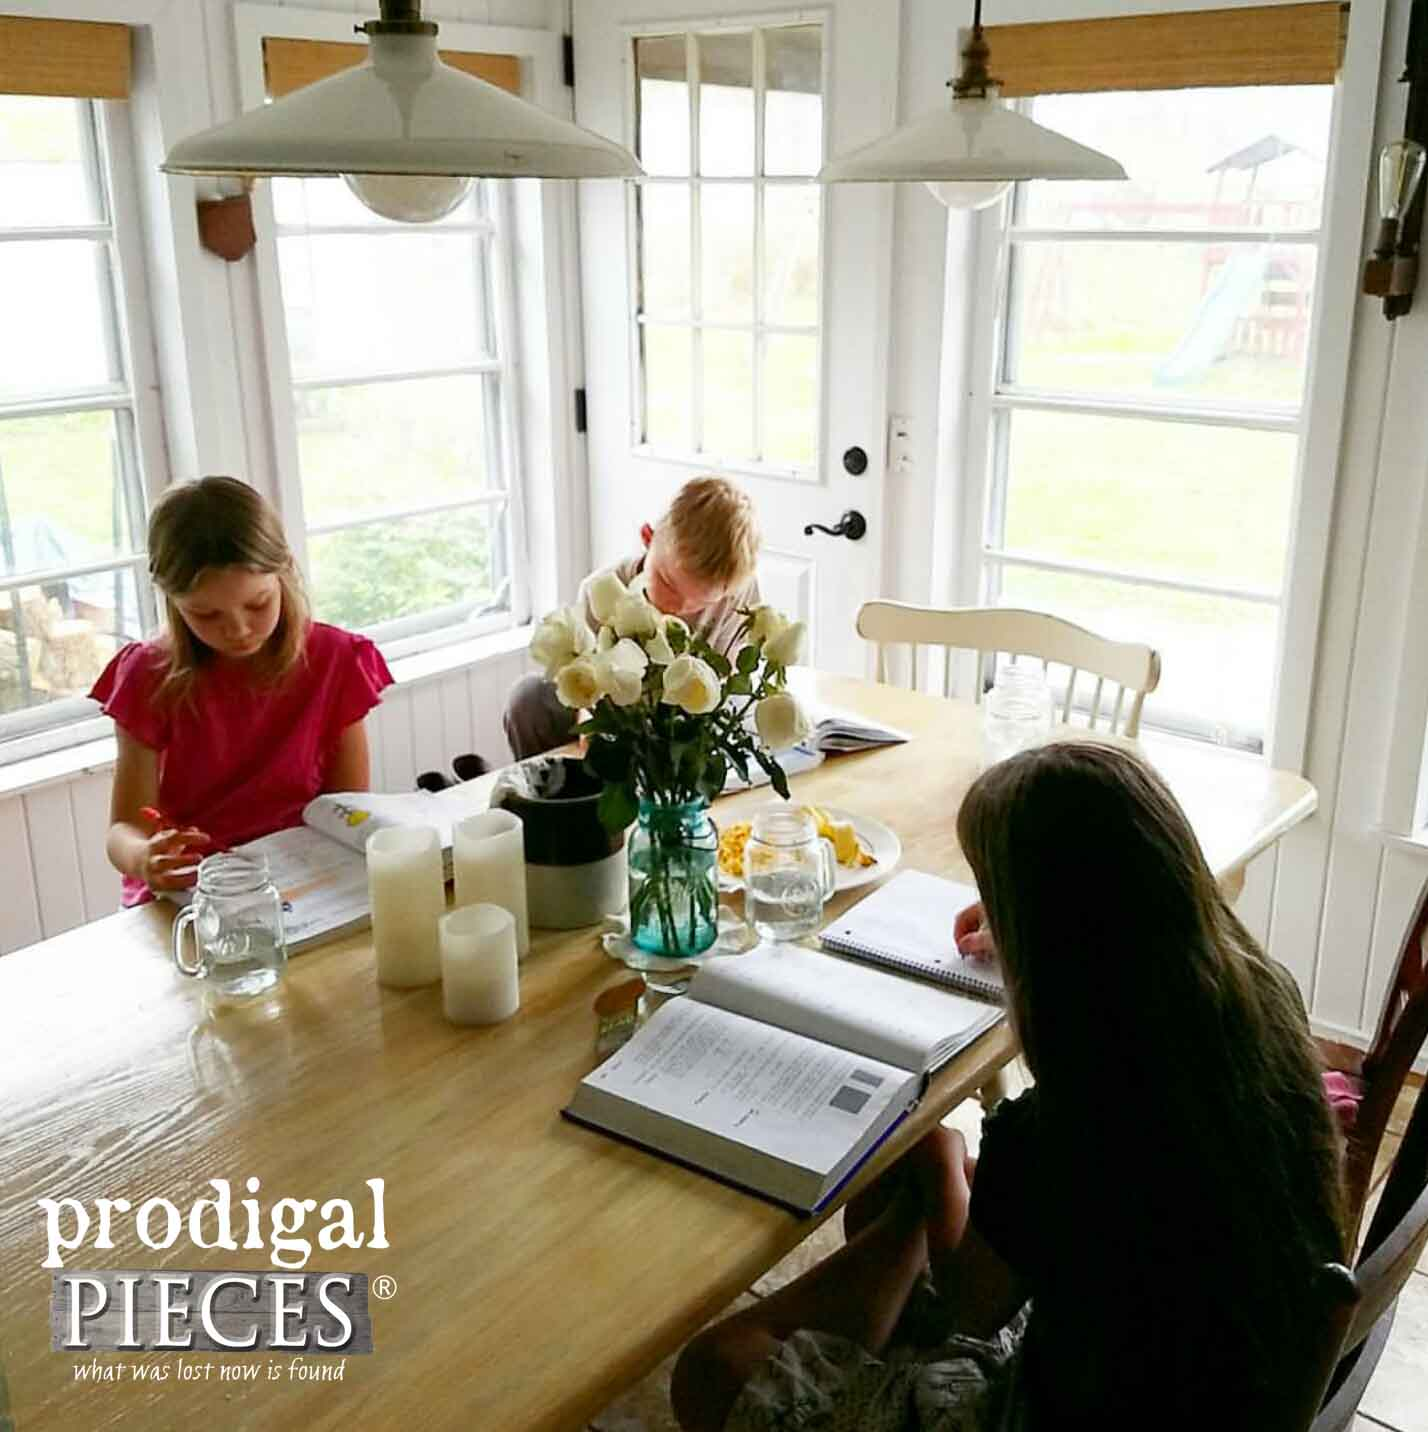 Children Working on Homeschool Work | Budgeting Business while Homeschooling | Prodigal Pieces | www.prodigalpieces.com